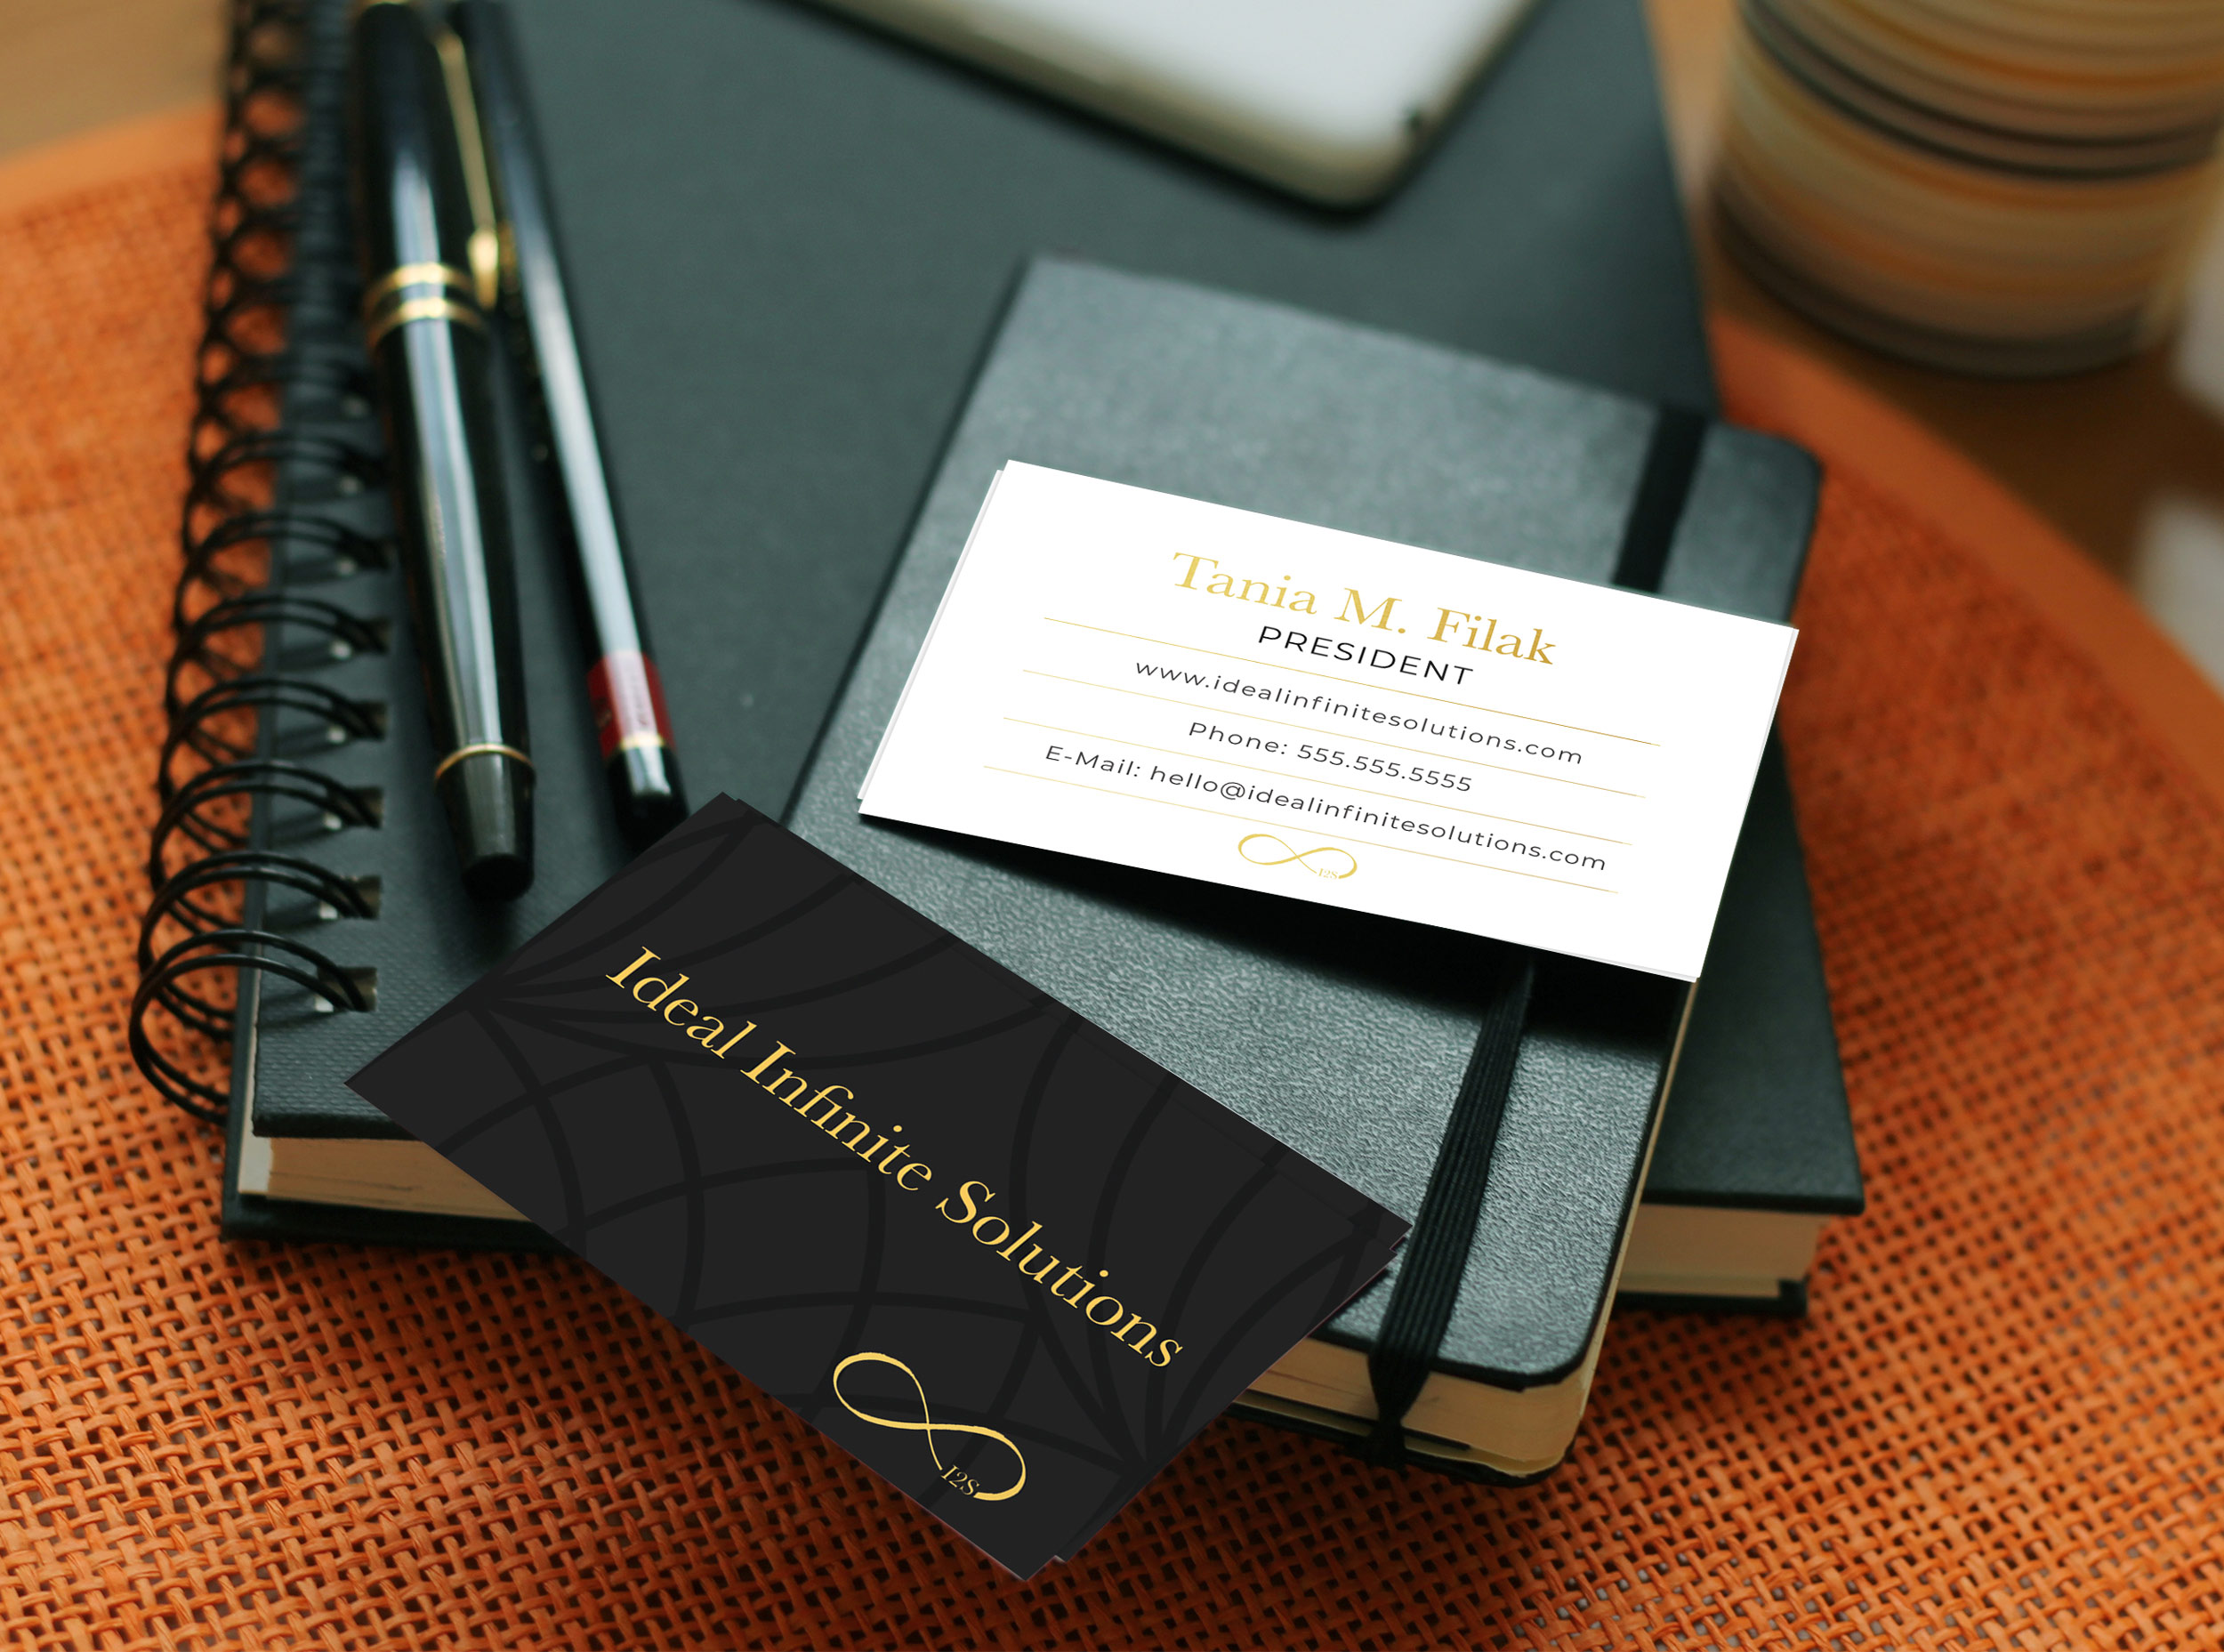 Ideal Infinite Solutions Business Cards